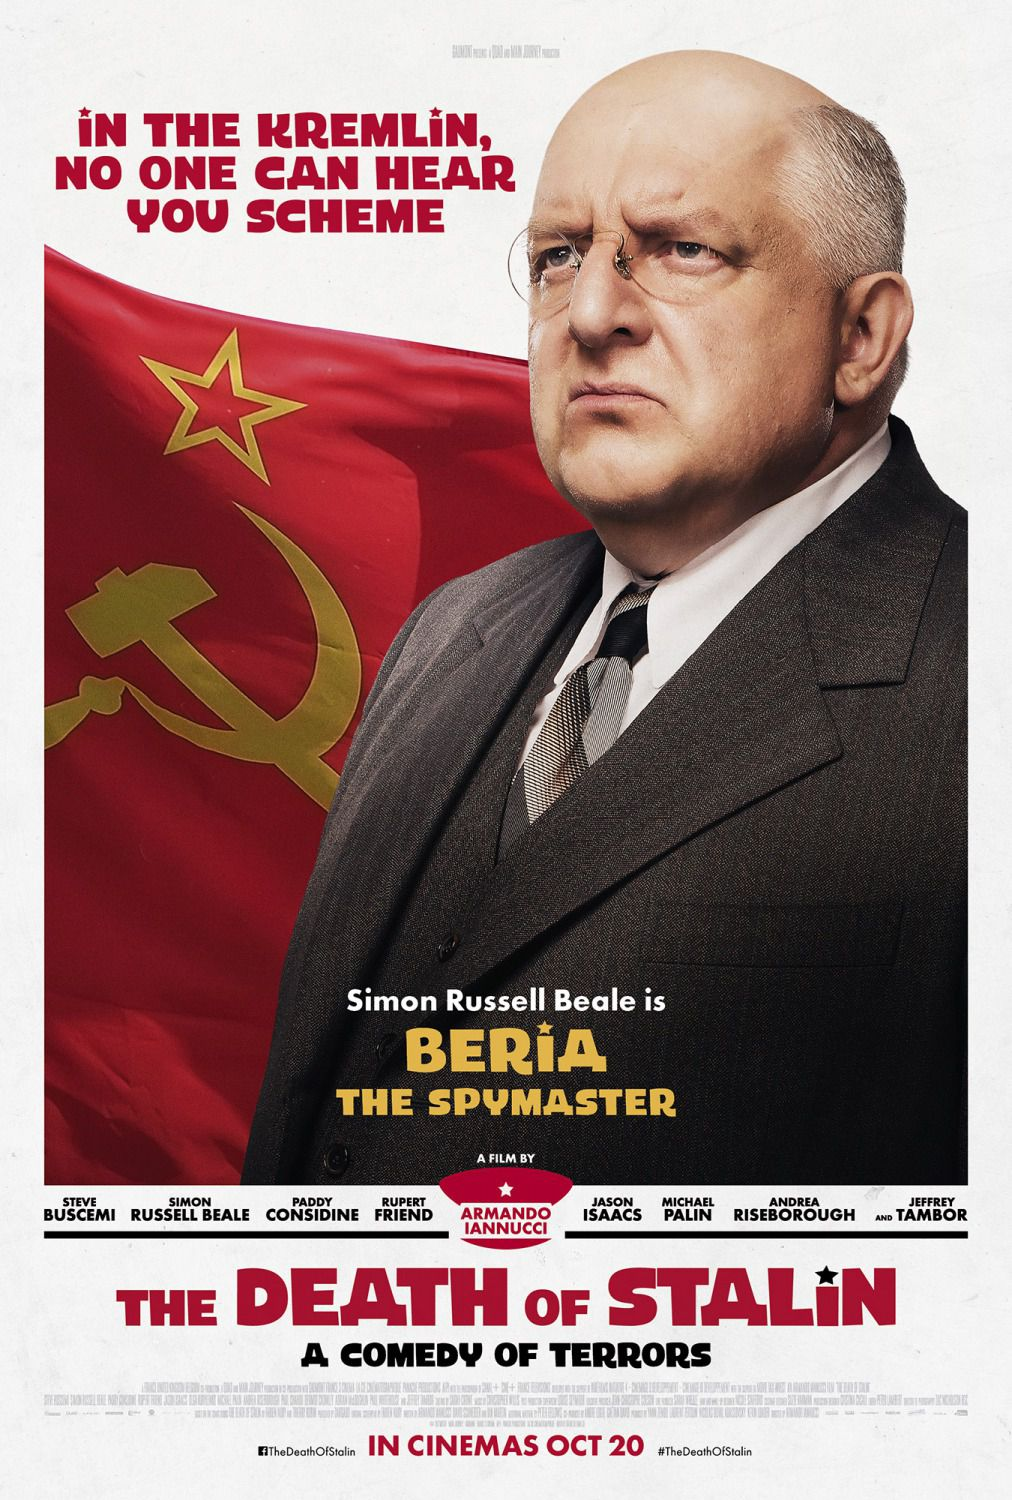 Simon Russell Beale is Beria the Spymaster